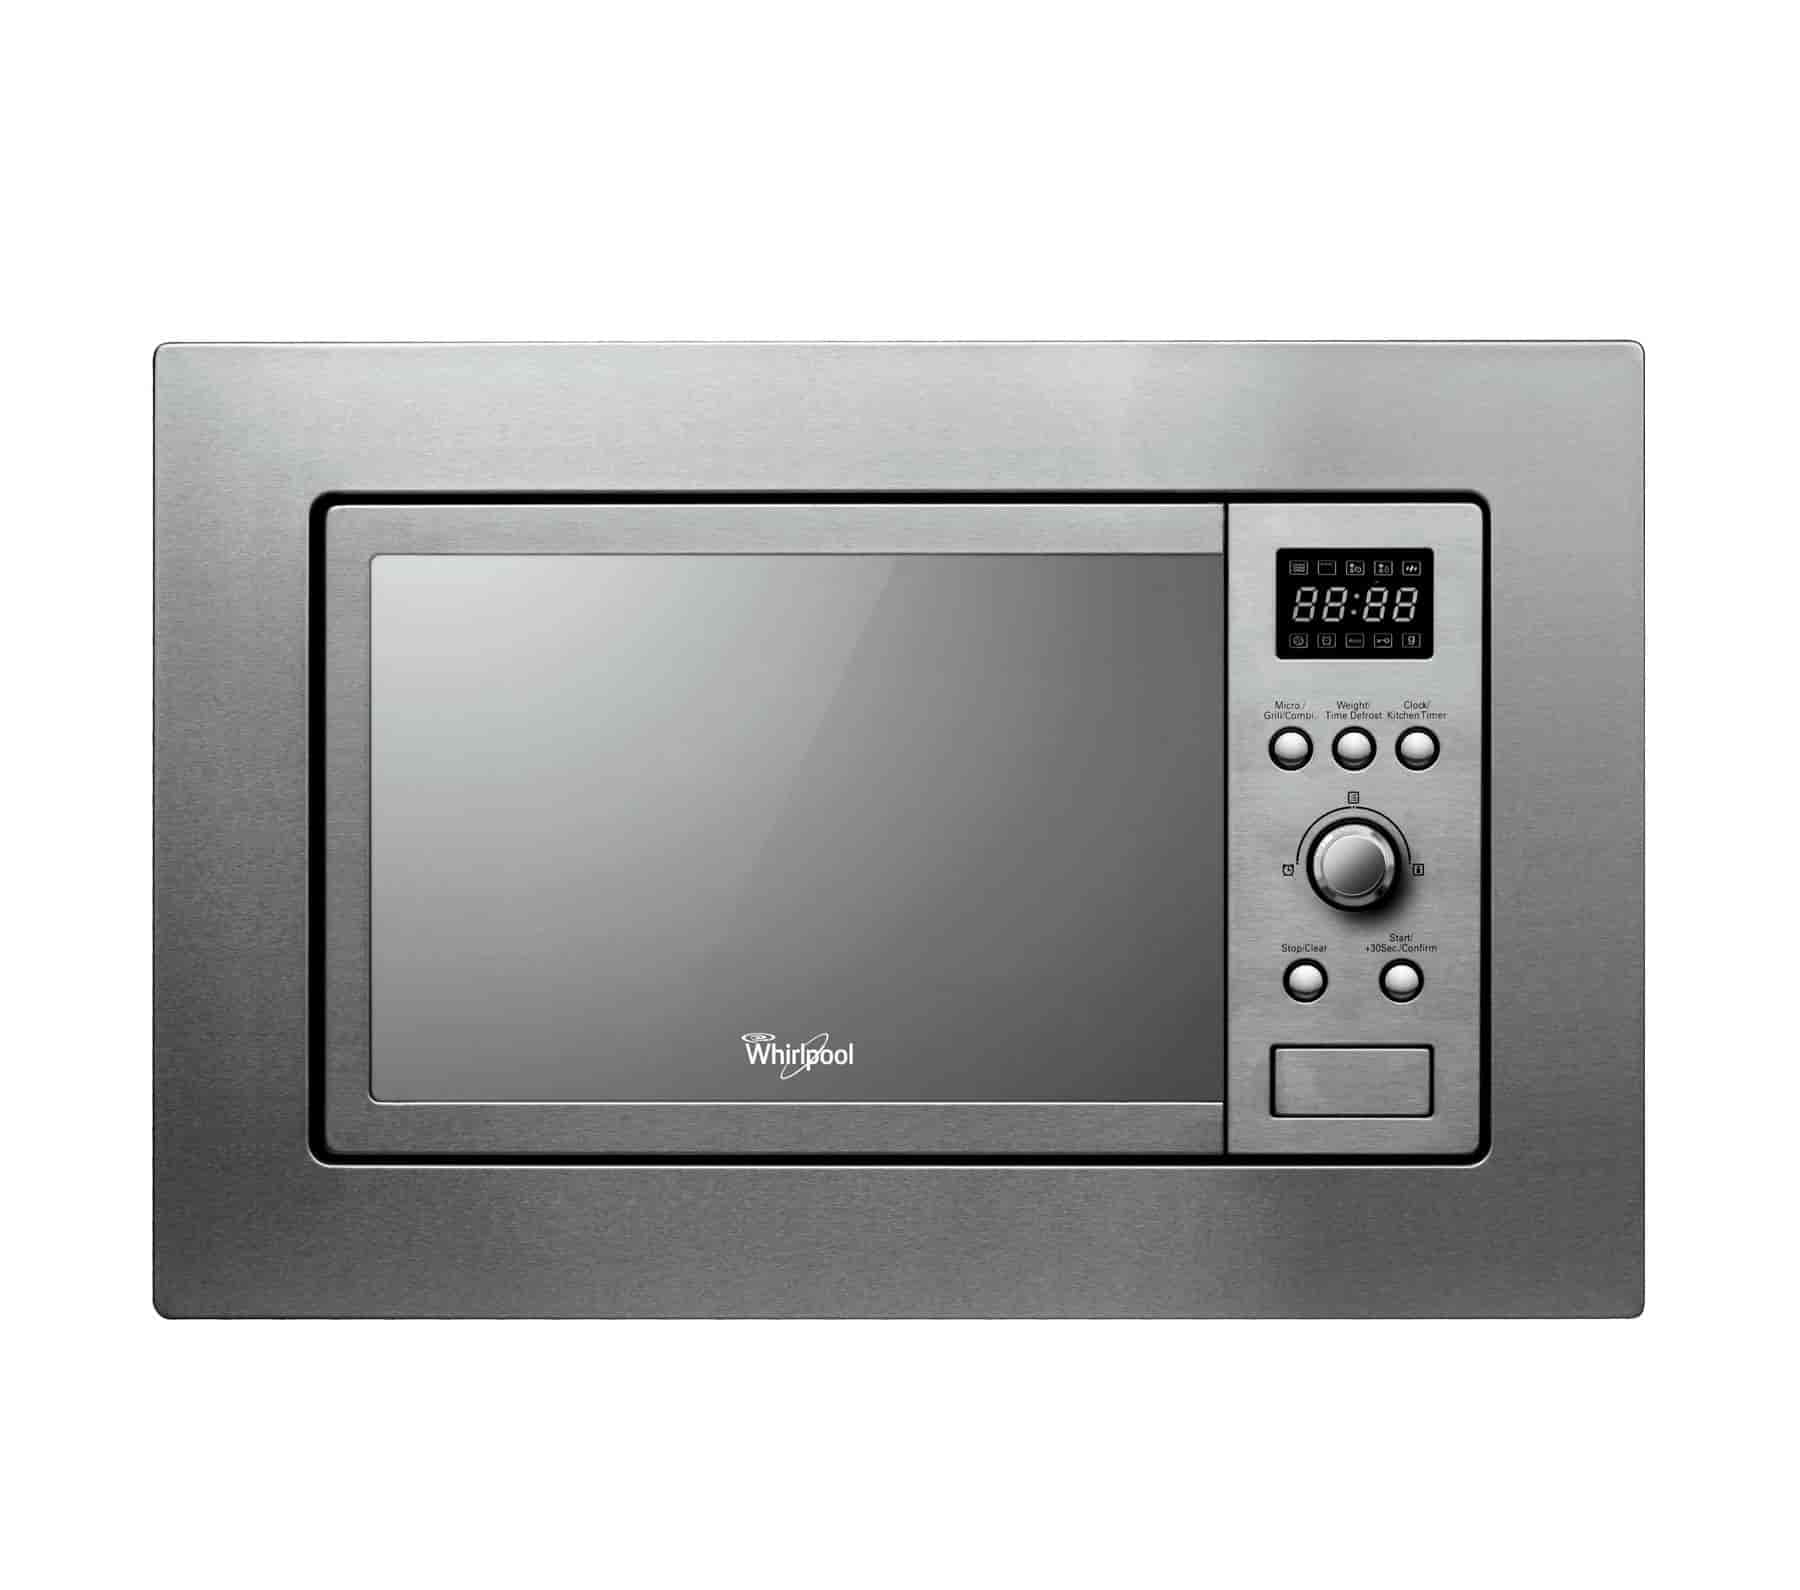 Whirlpool 20 Litres Built In Microwave Oven Inox Amw 1401 Ix